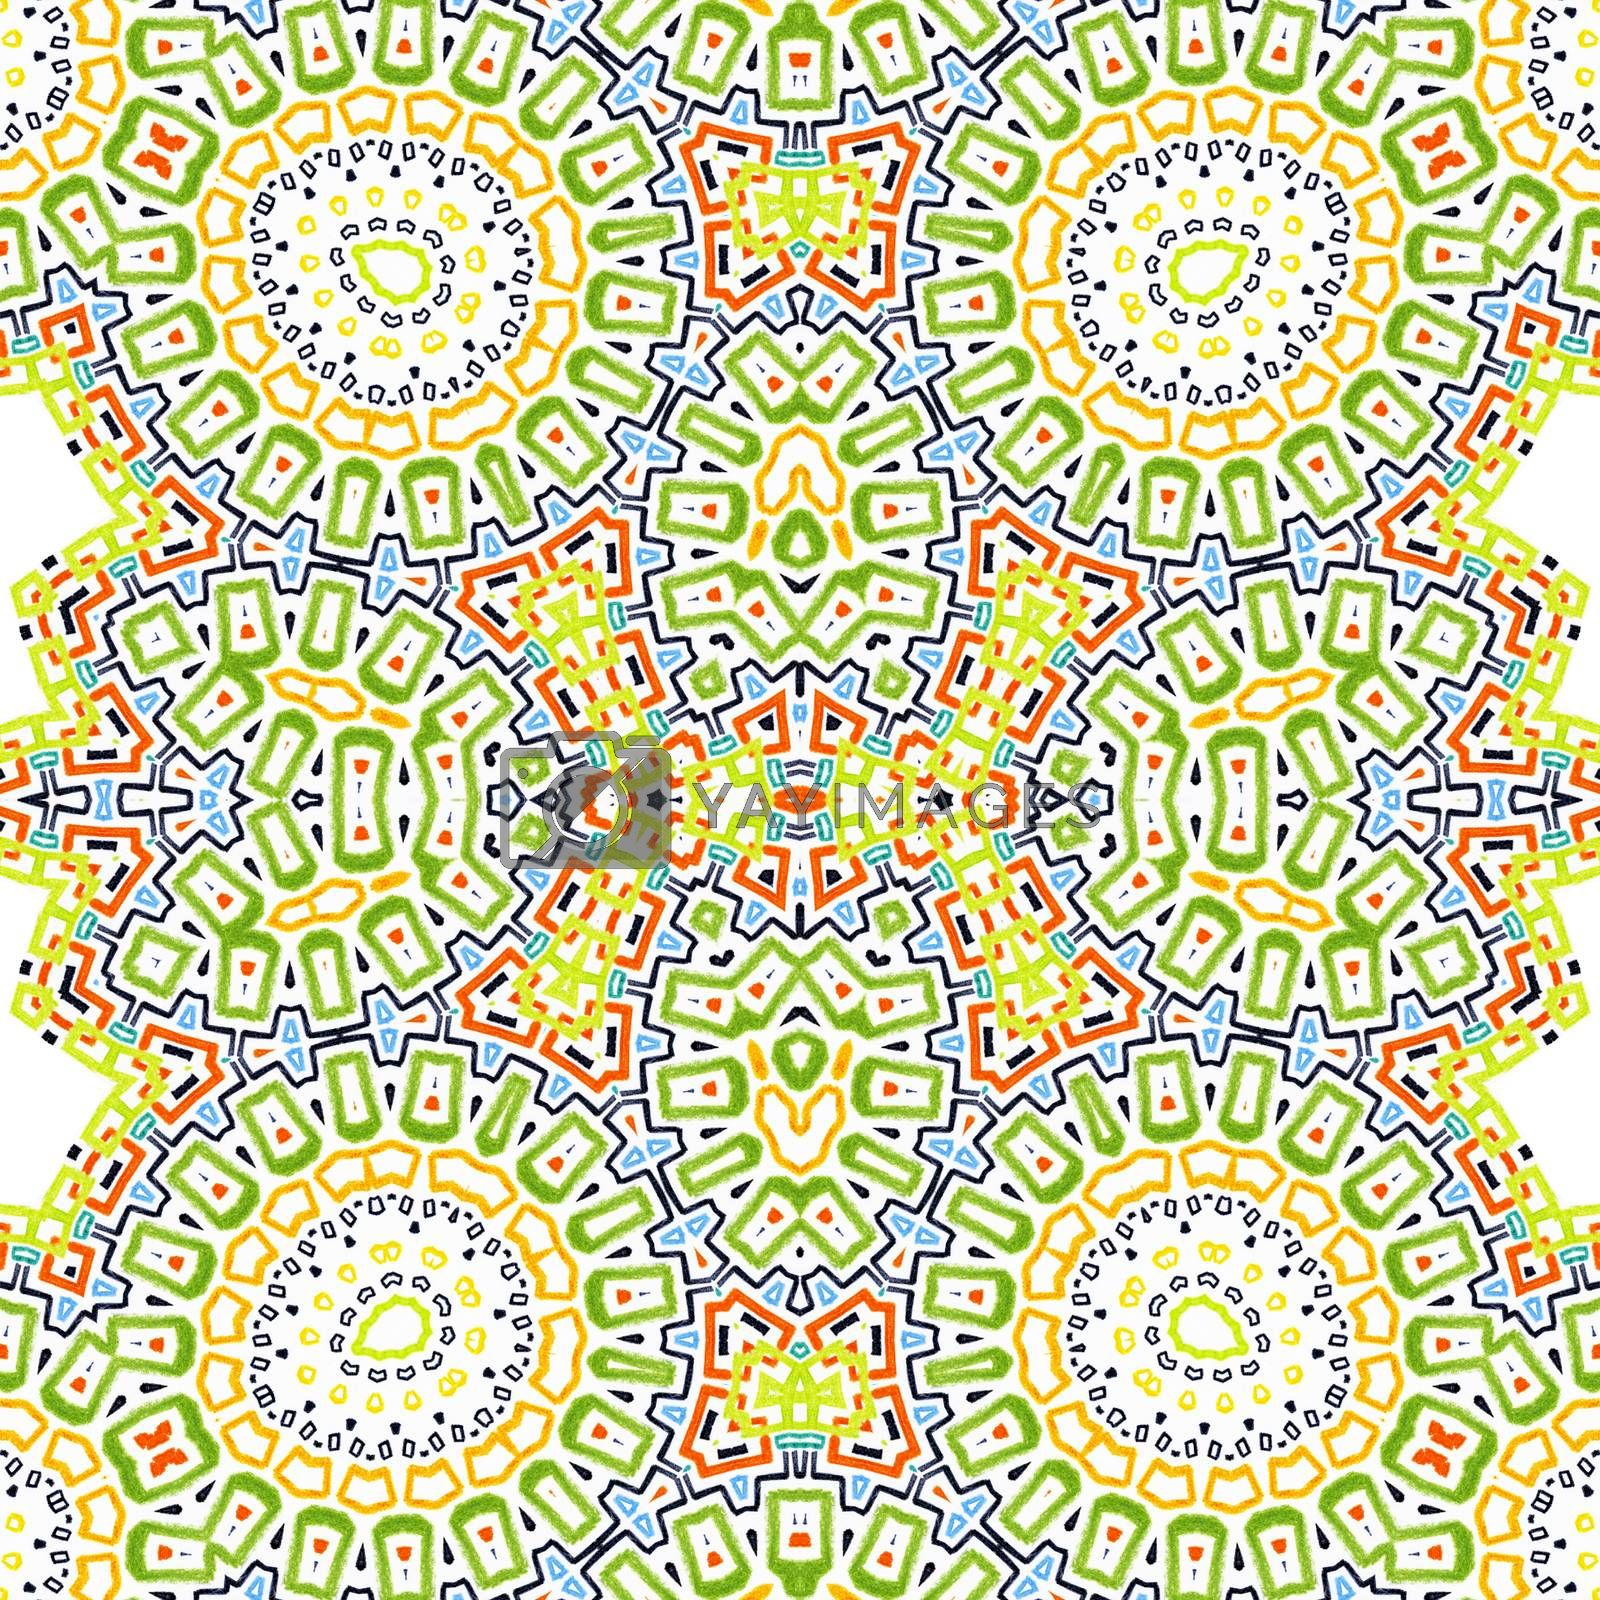 Bright colorful background with abstract pattern